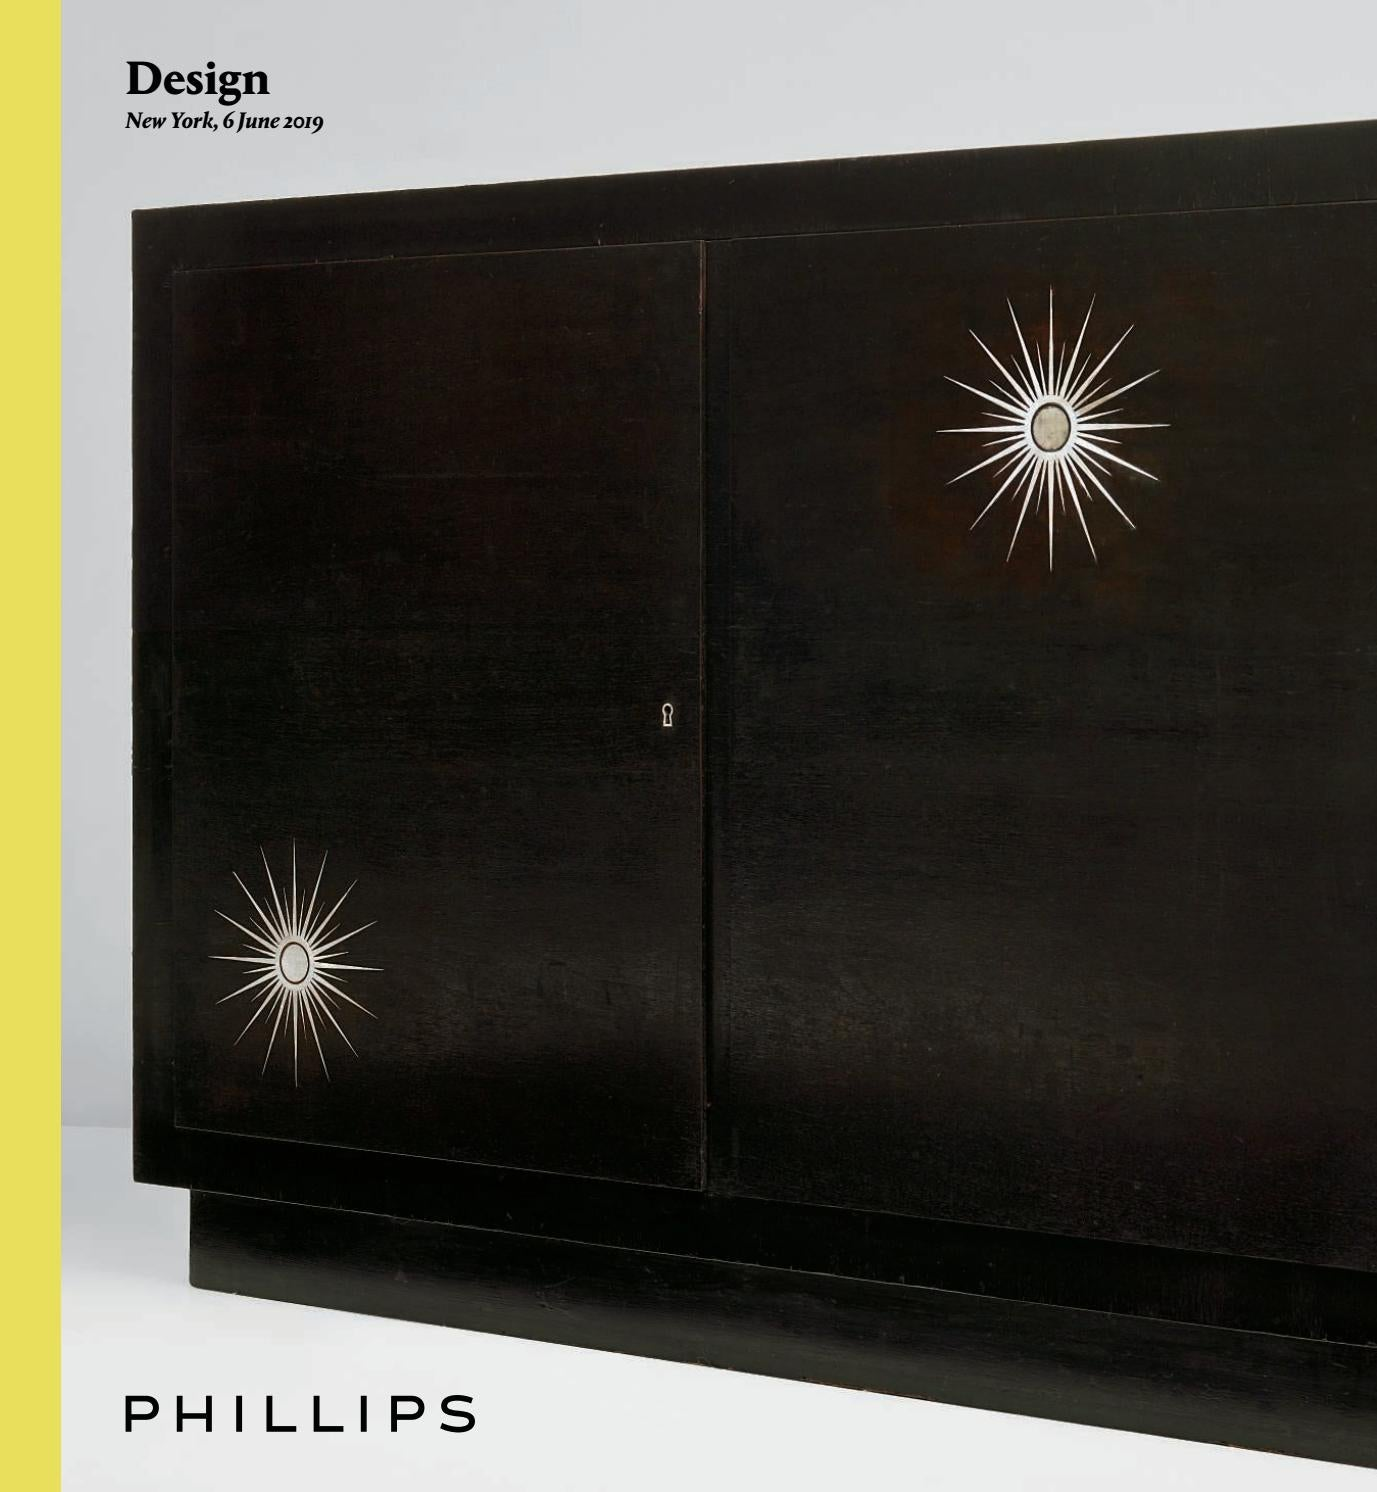 Sedie Formica Nuove Design Catalogue By Phillips Issuu